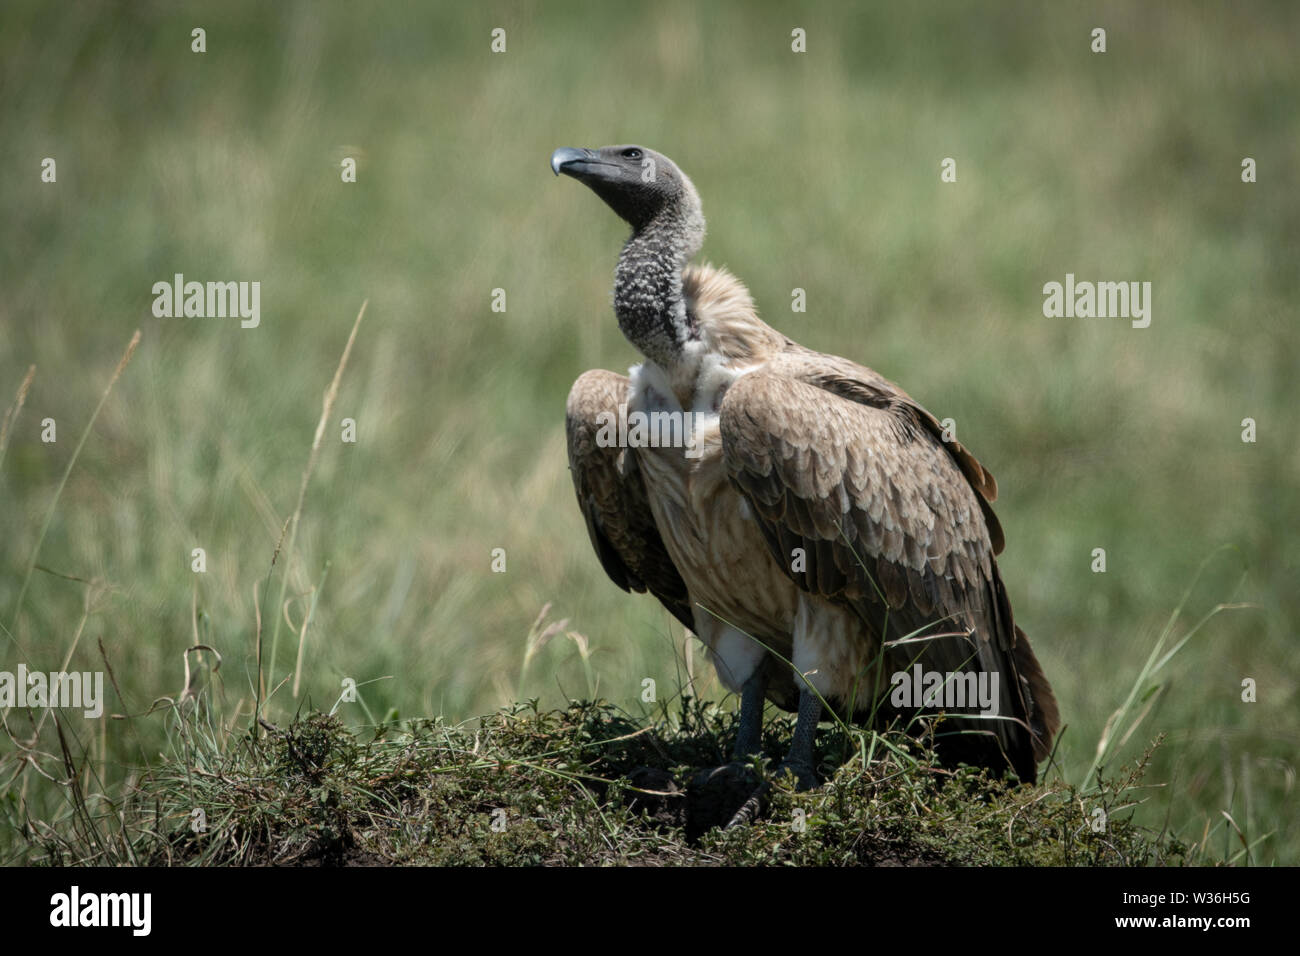 African white-backed vulture on mound looking up - Stock Image